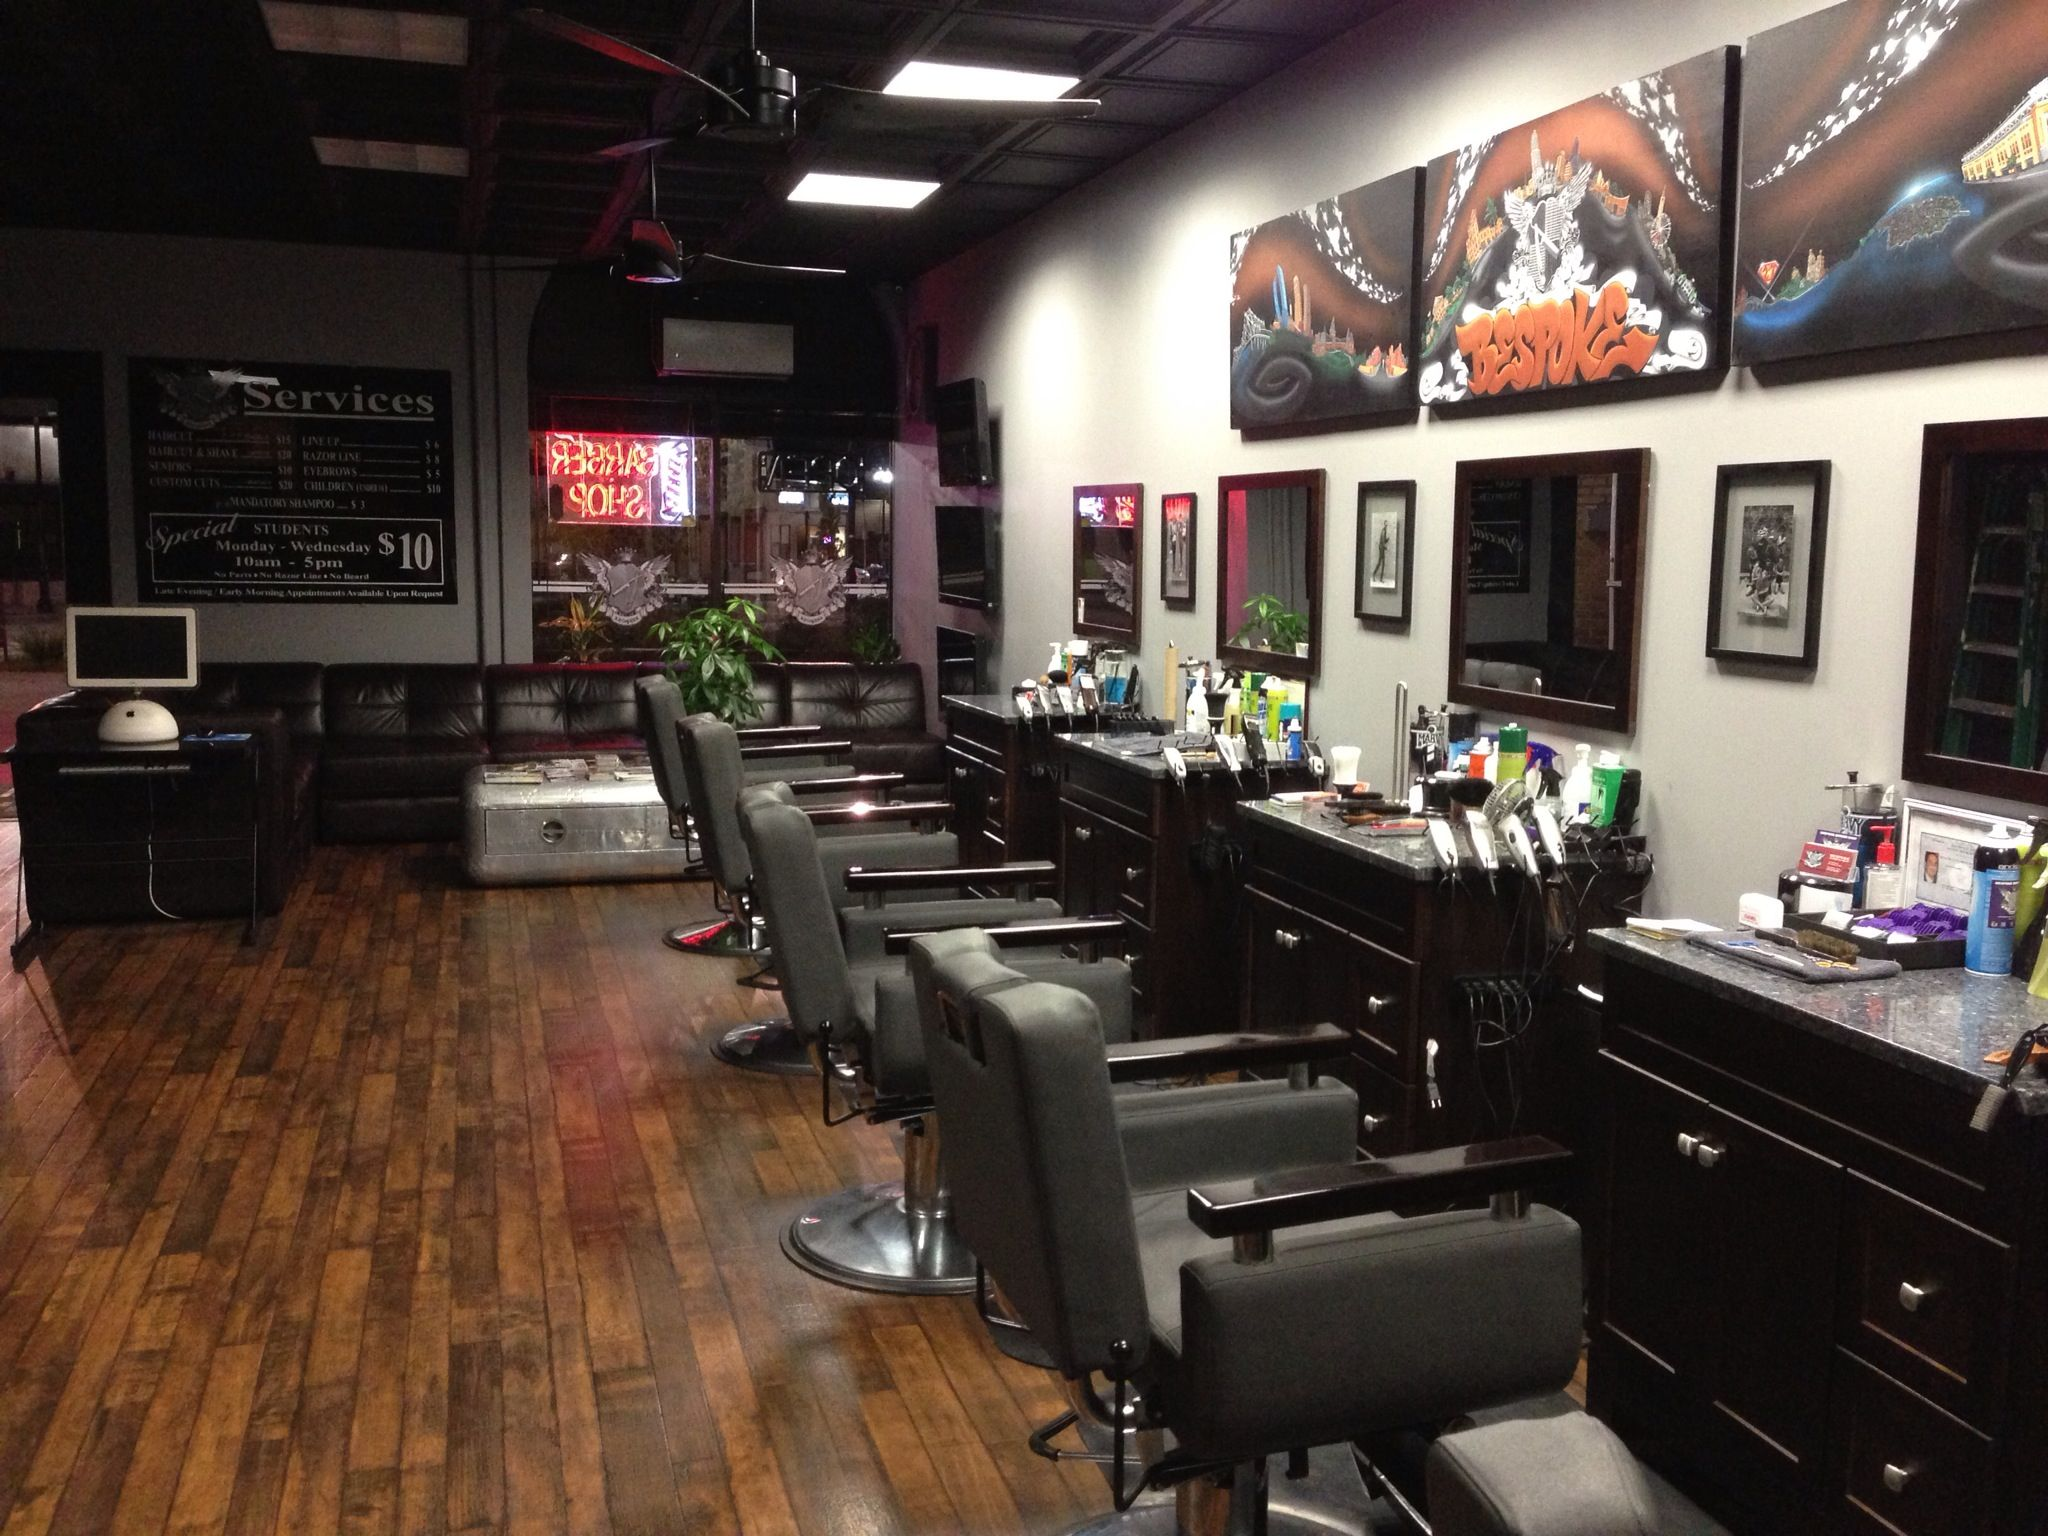 Bespoke barbershop 419 north ave newrochelle ny 914 365 1665 westchester